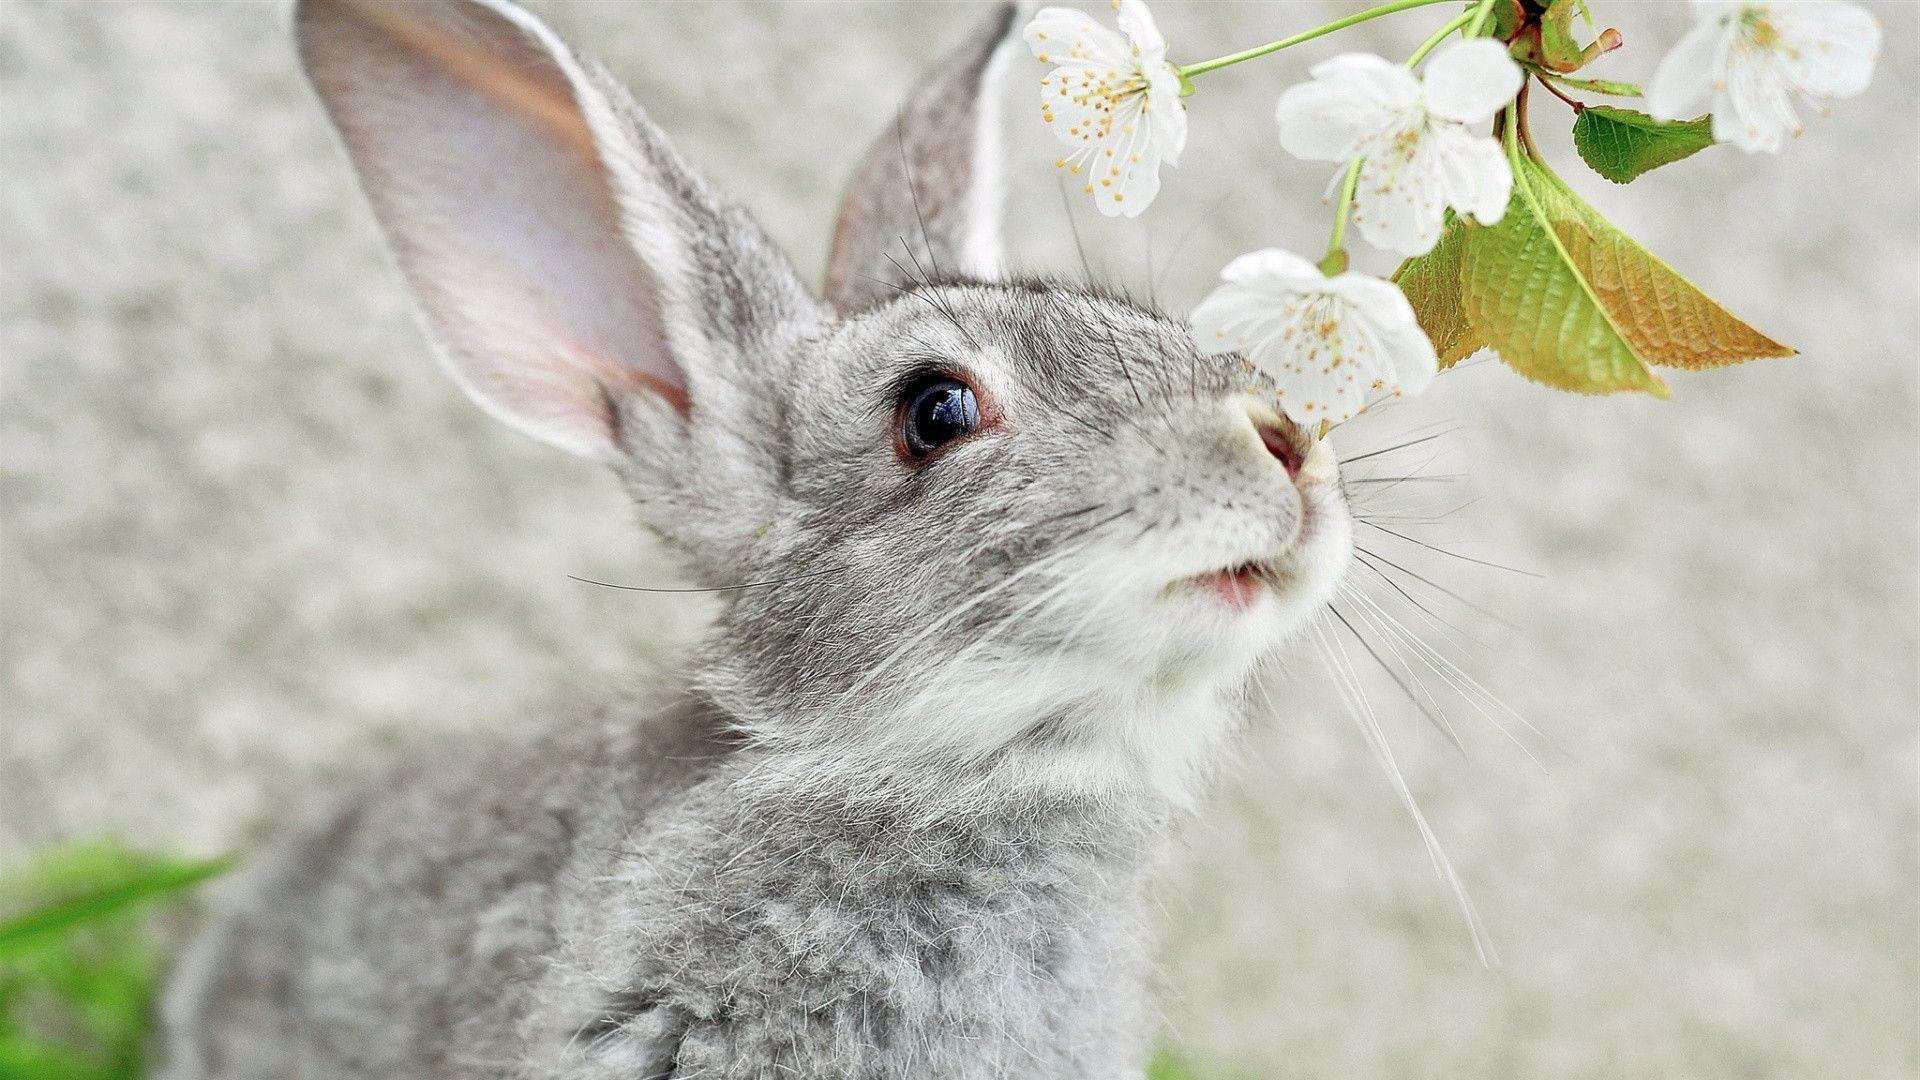 Rabbit wallpapers wallpaper cave for Animal wallpaper for walls